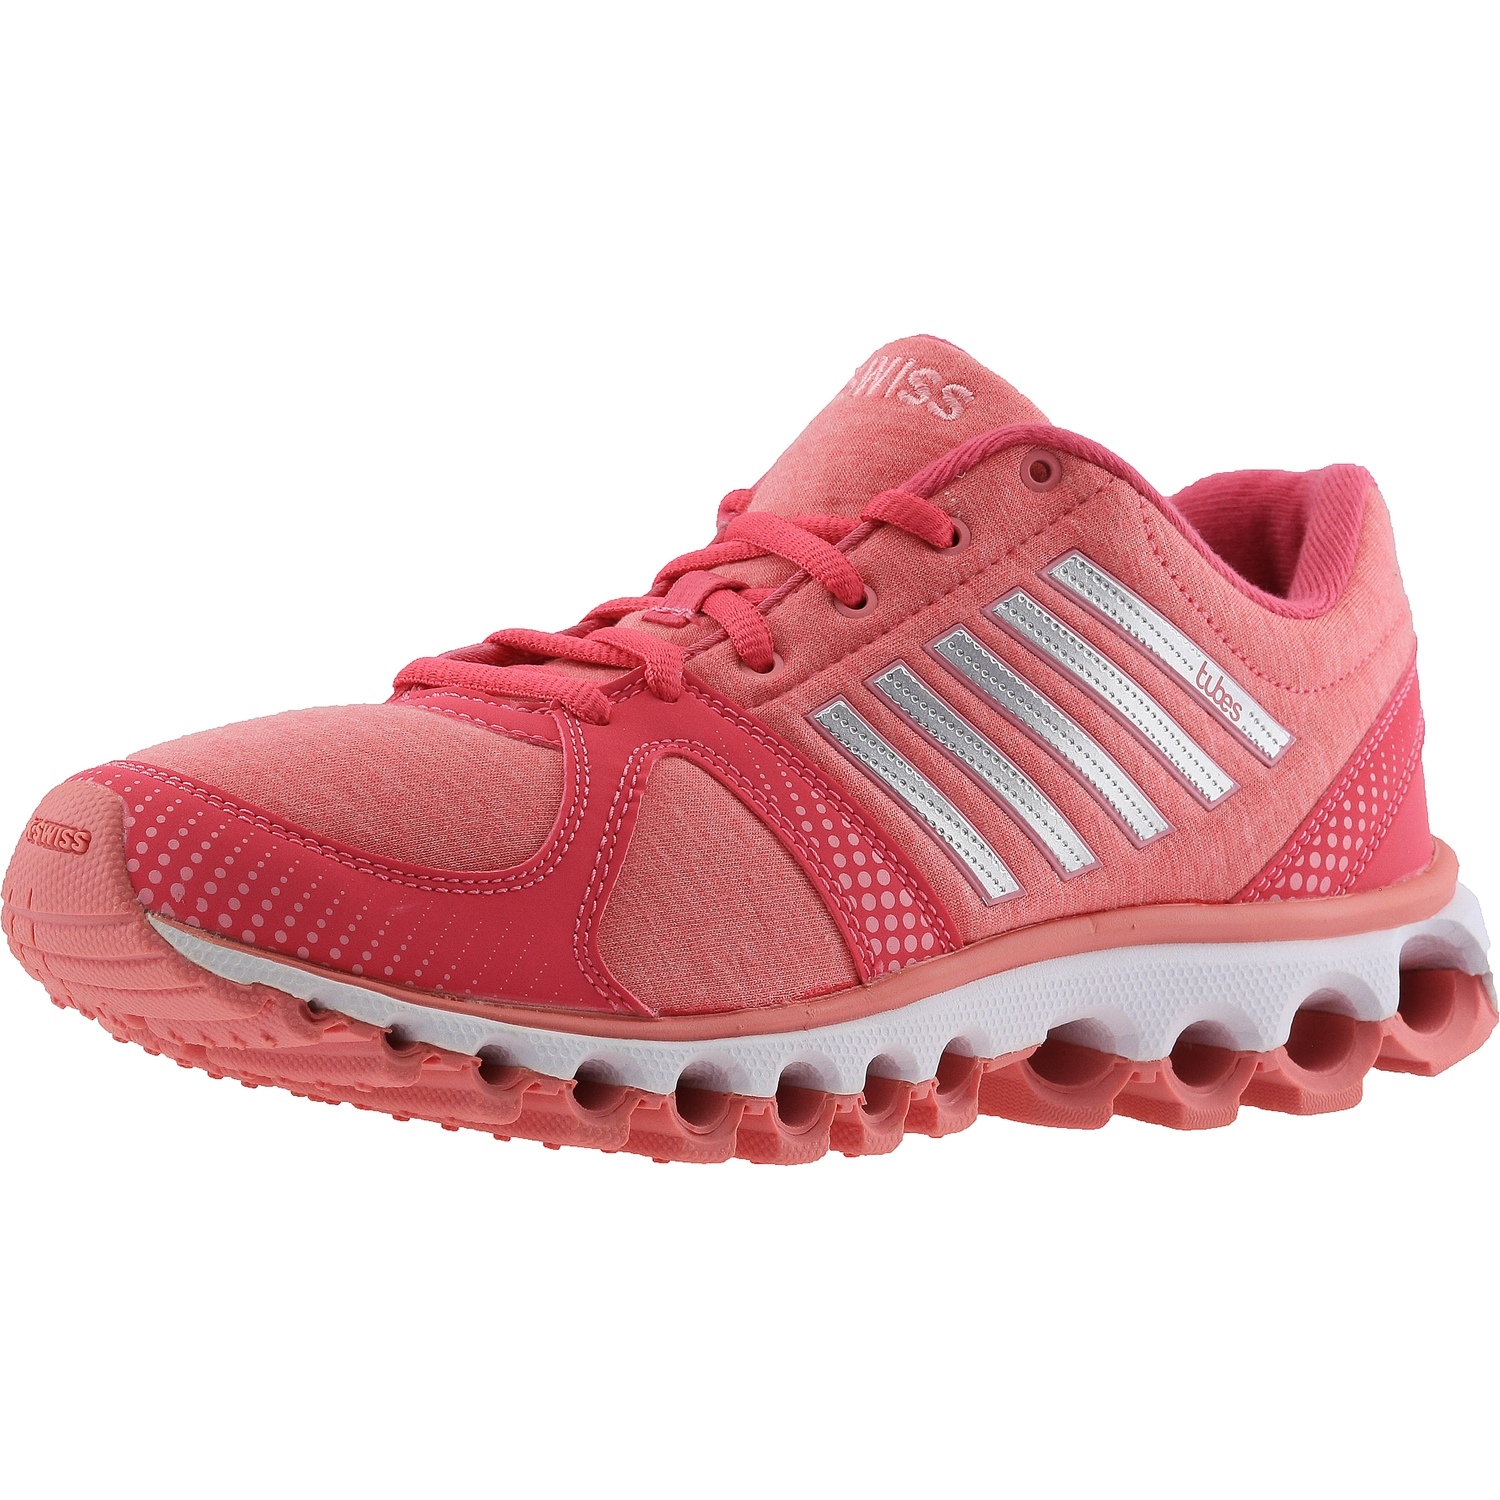 K-Swiss Women's X-160 Heather Cmf Low Honey Suckle / Geranium Pink Ankle-High Fabric Running Shoe - 10M